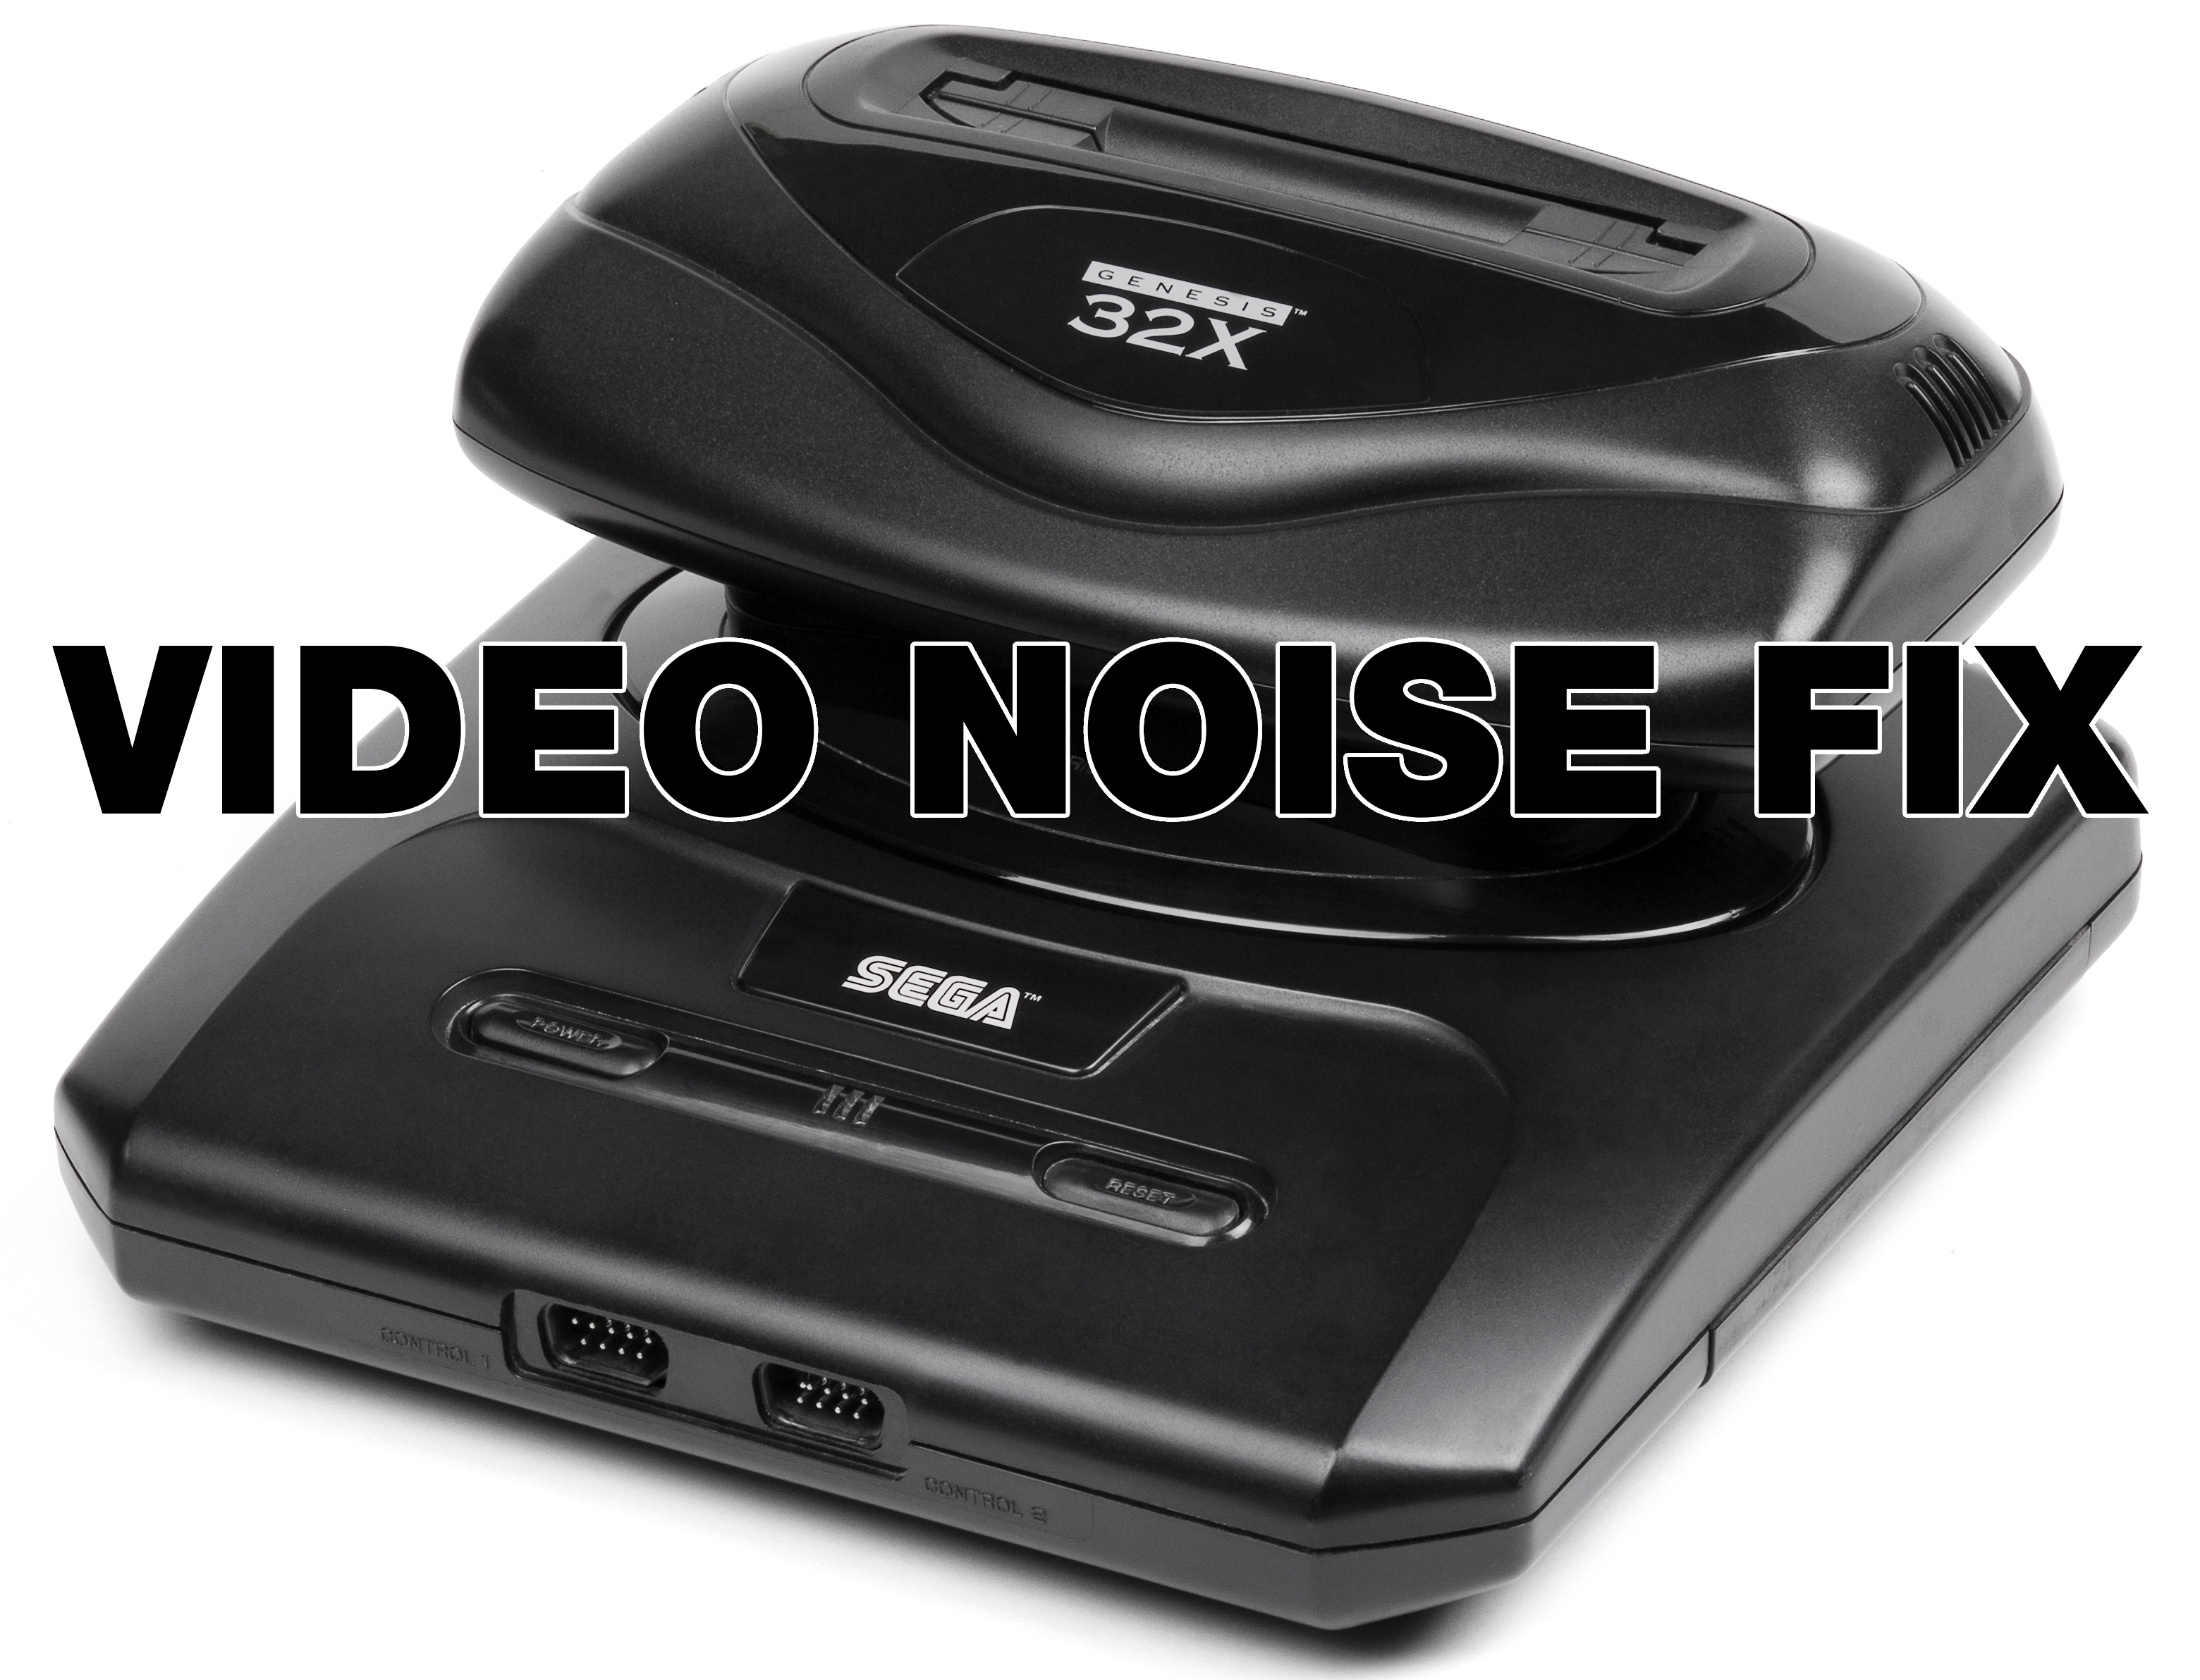 Sega 32X Video Noise Fix by Kevtris